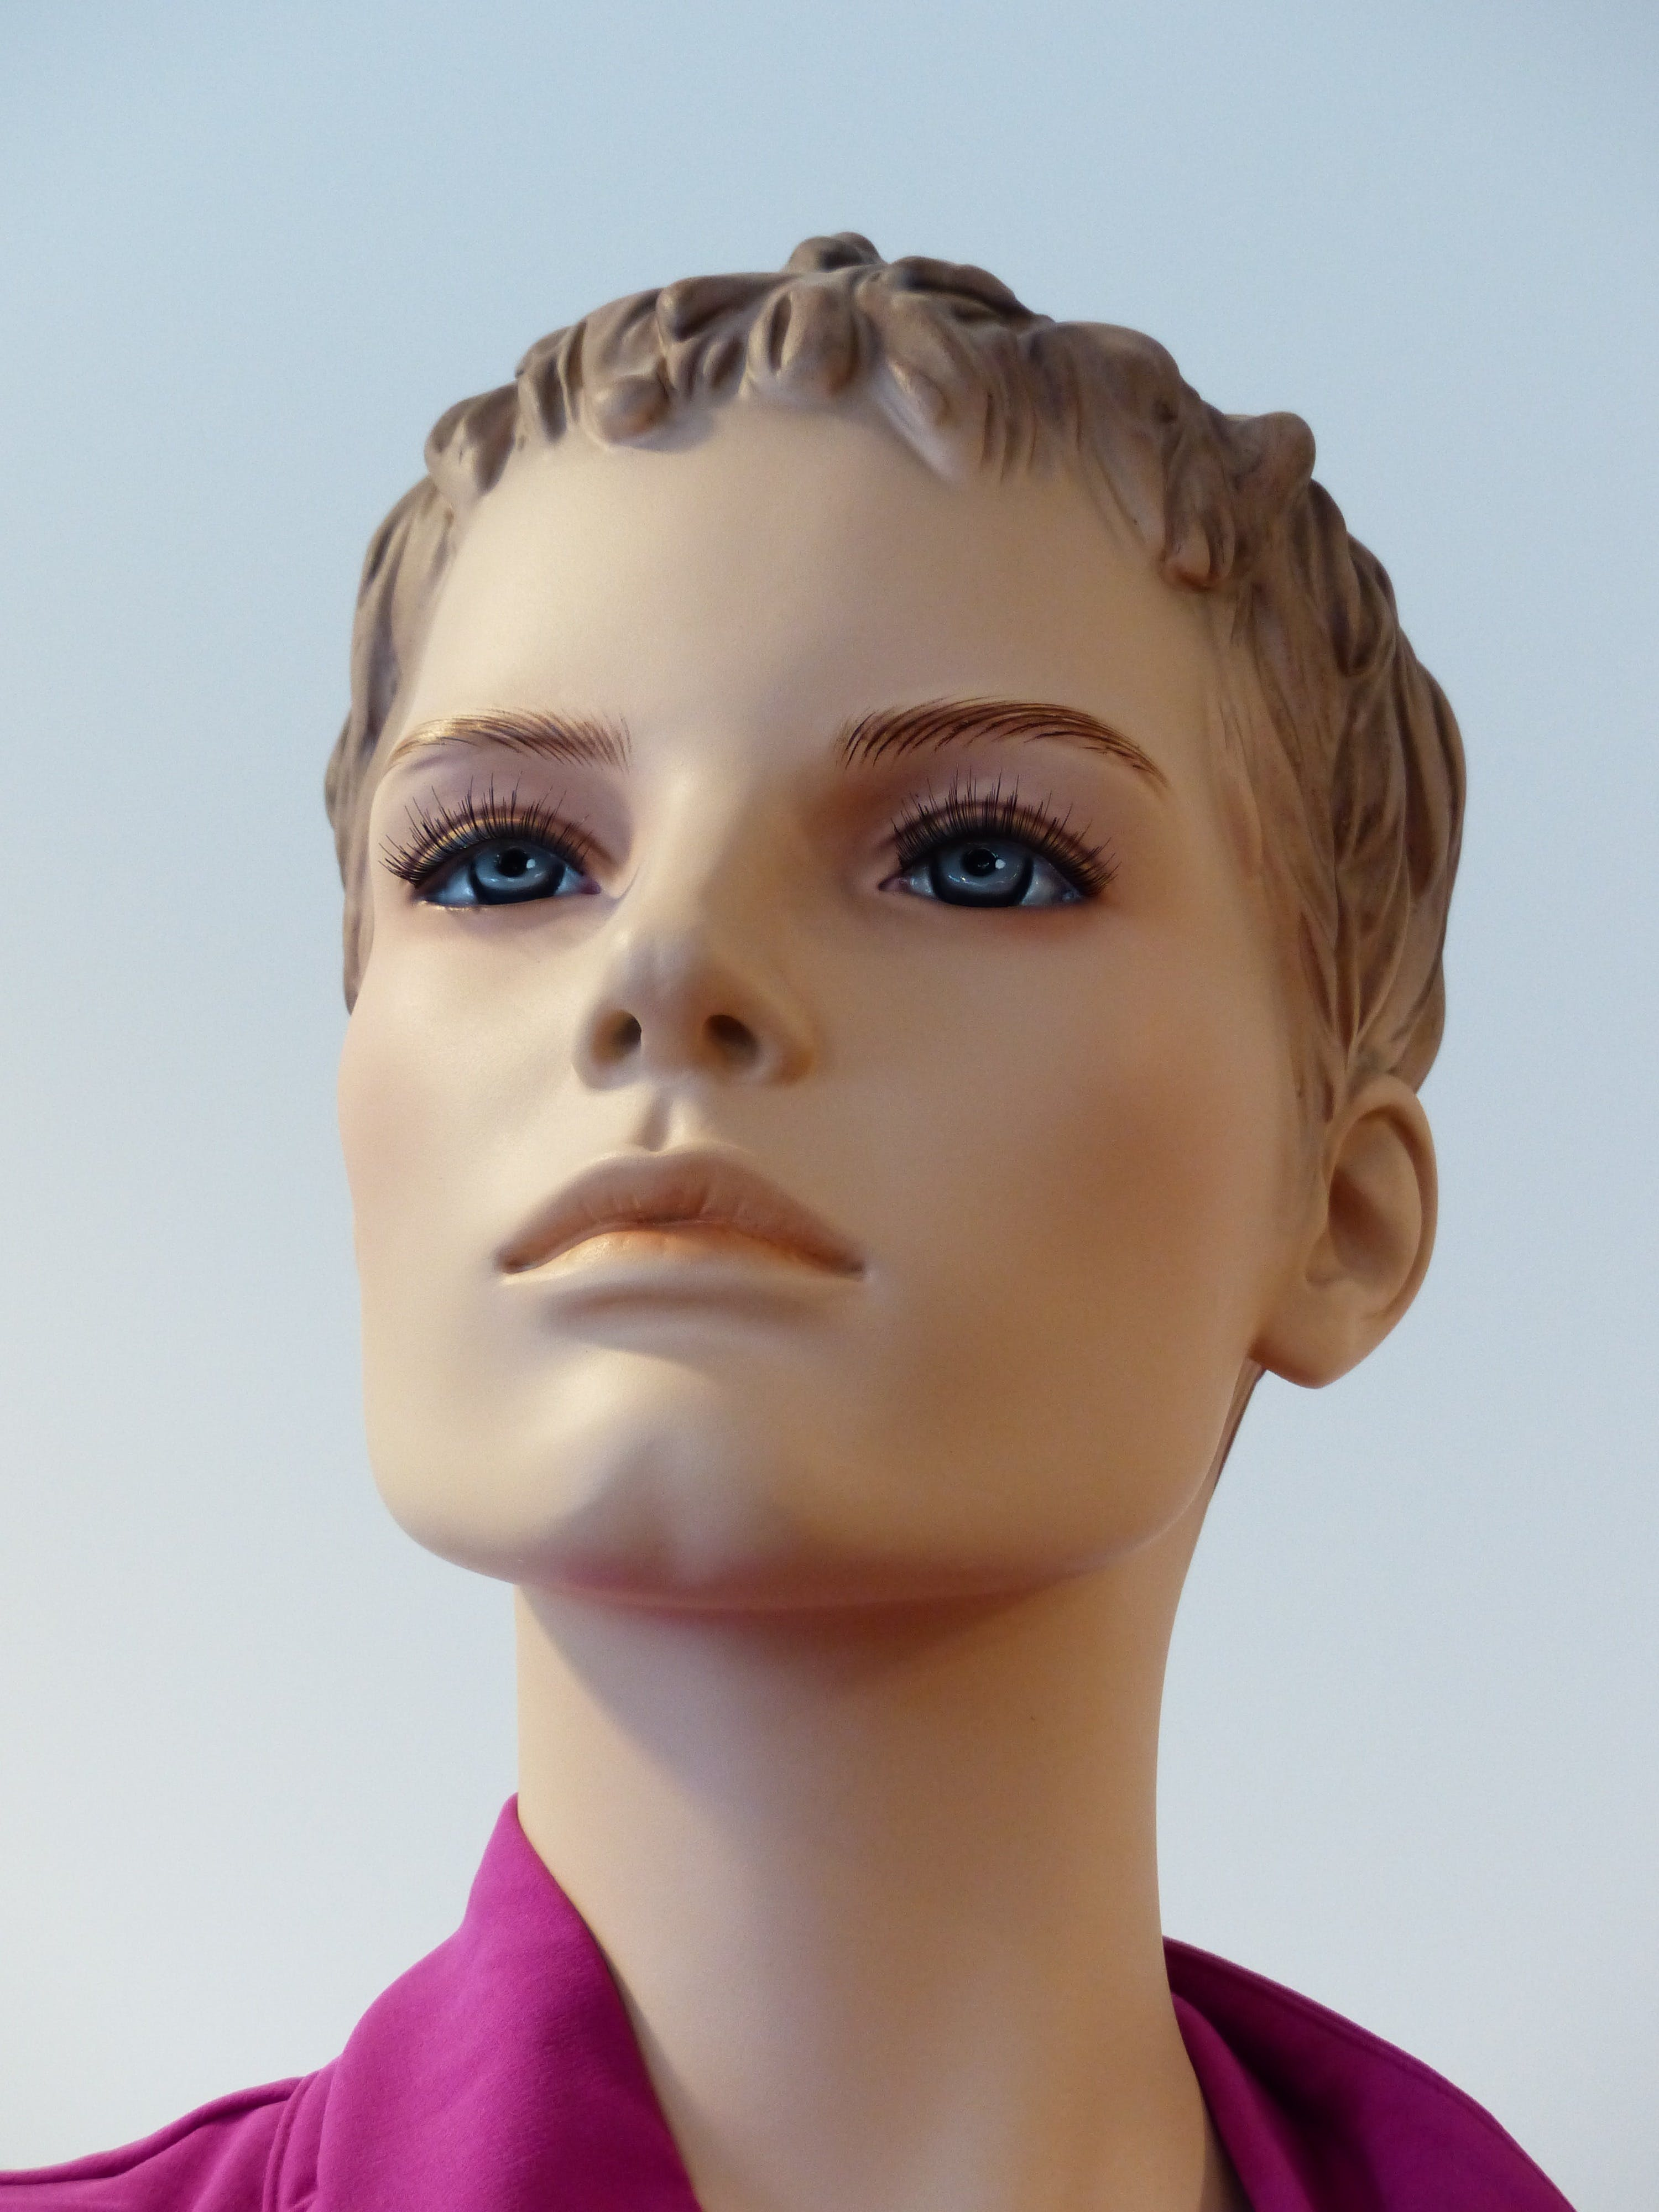 Pink Shirt on Mannequin